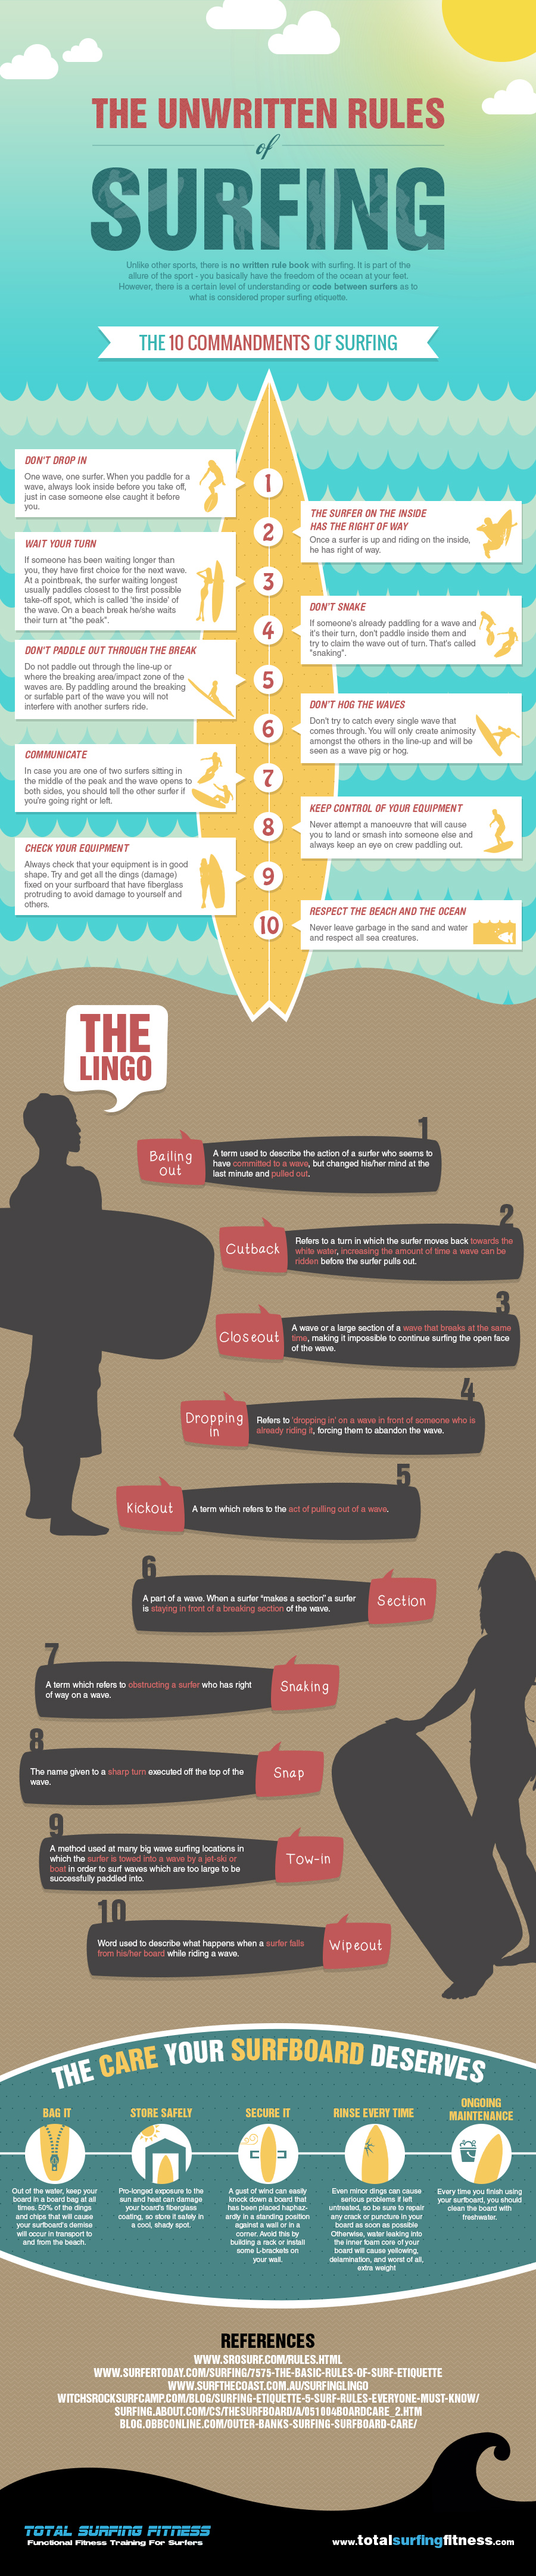 Rules of surfing infographic